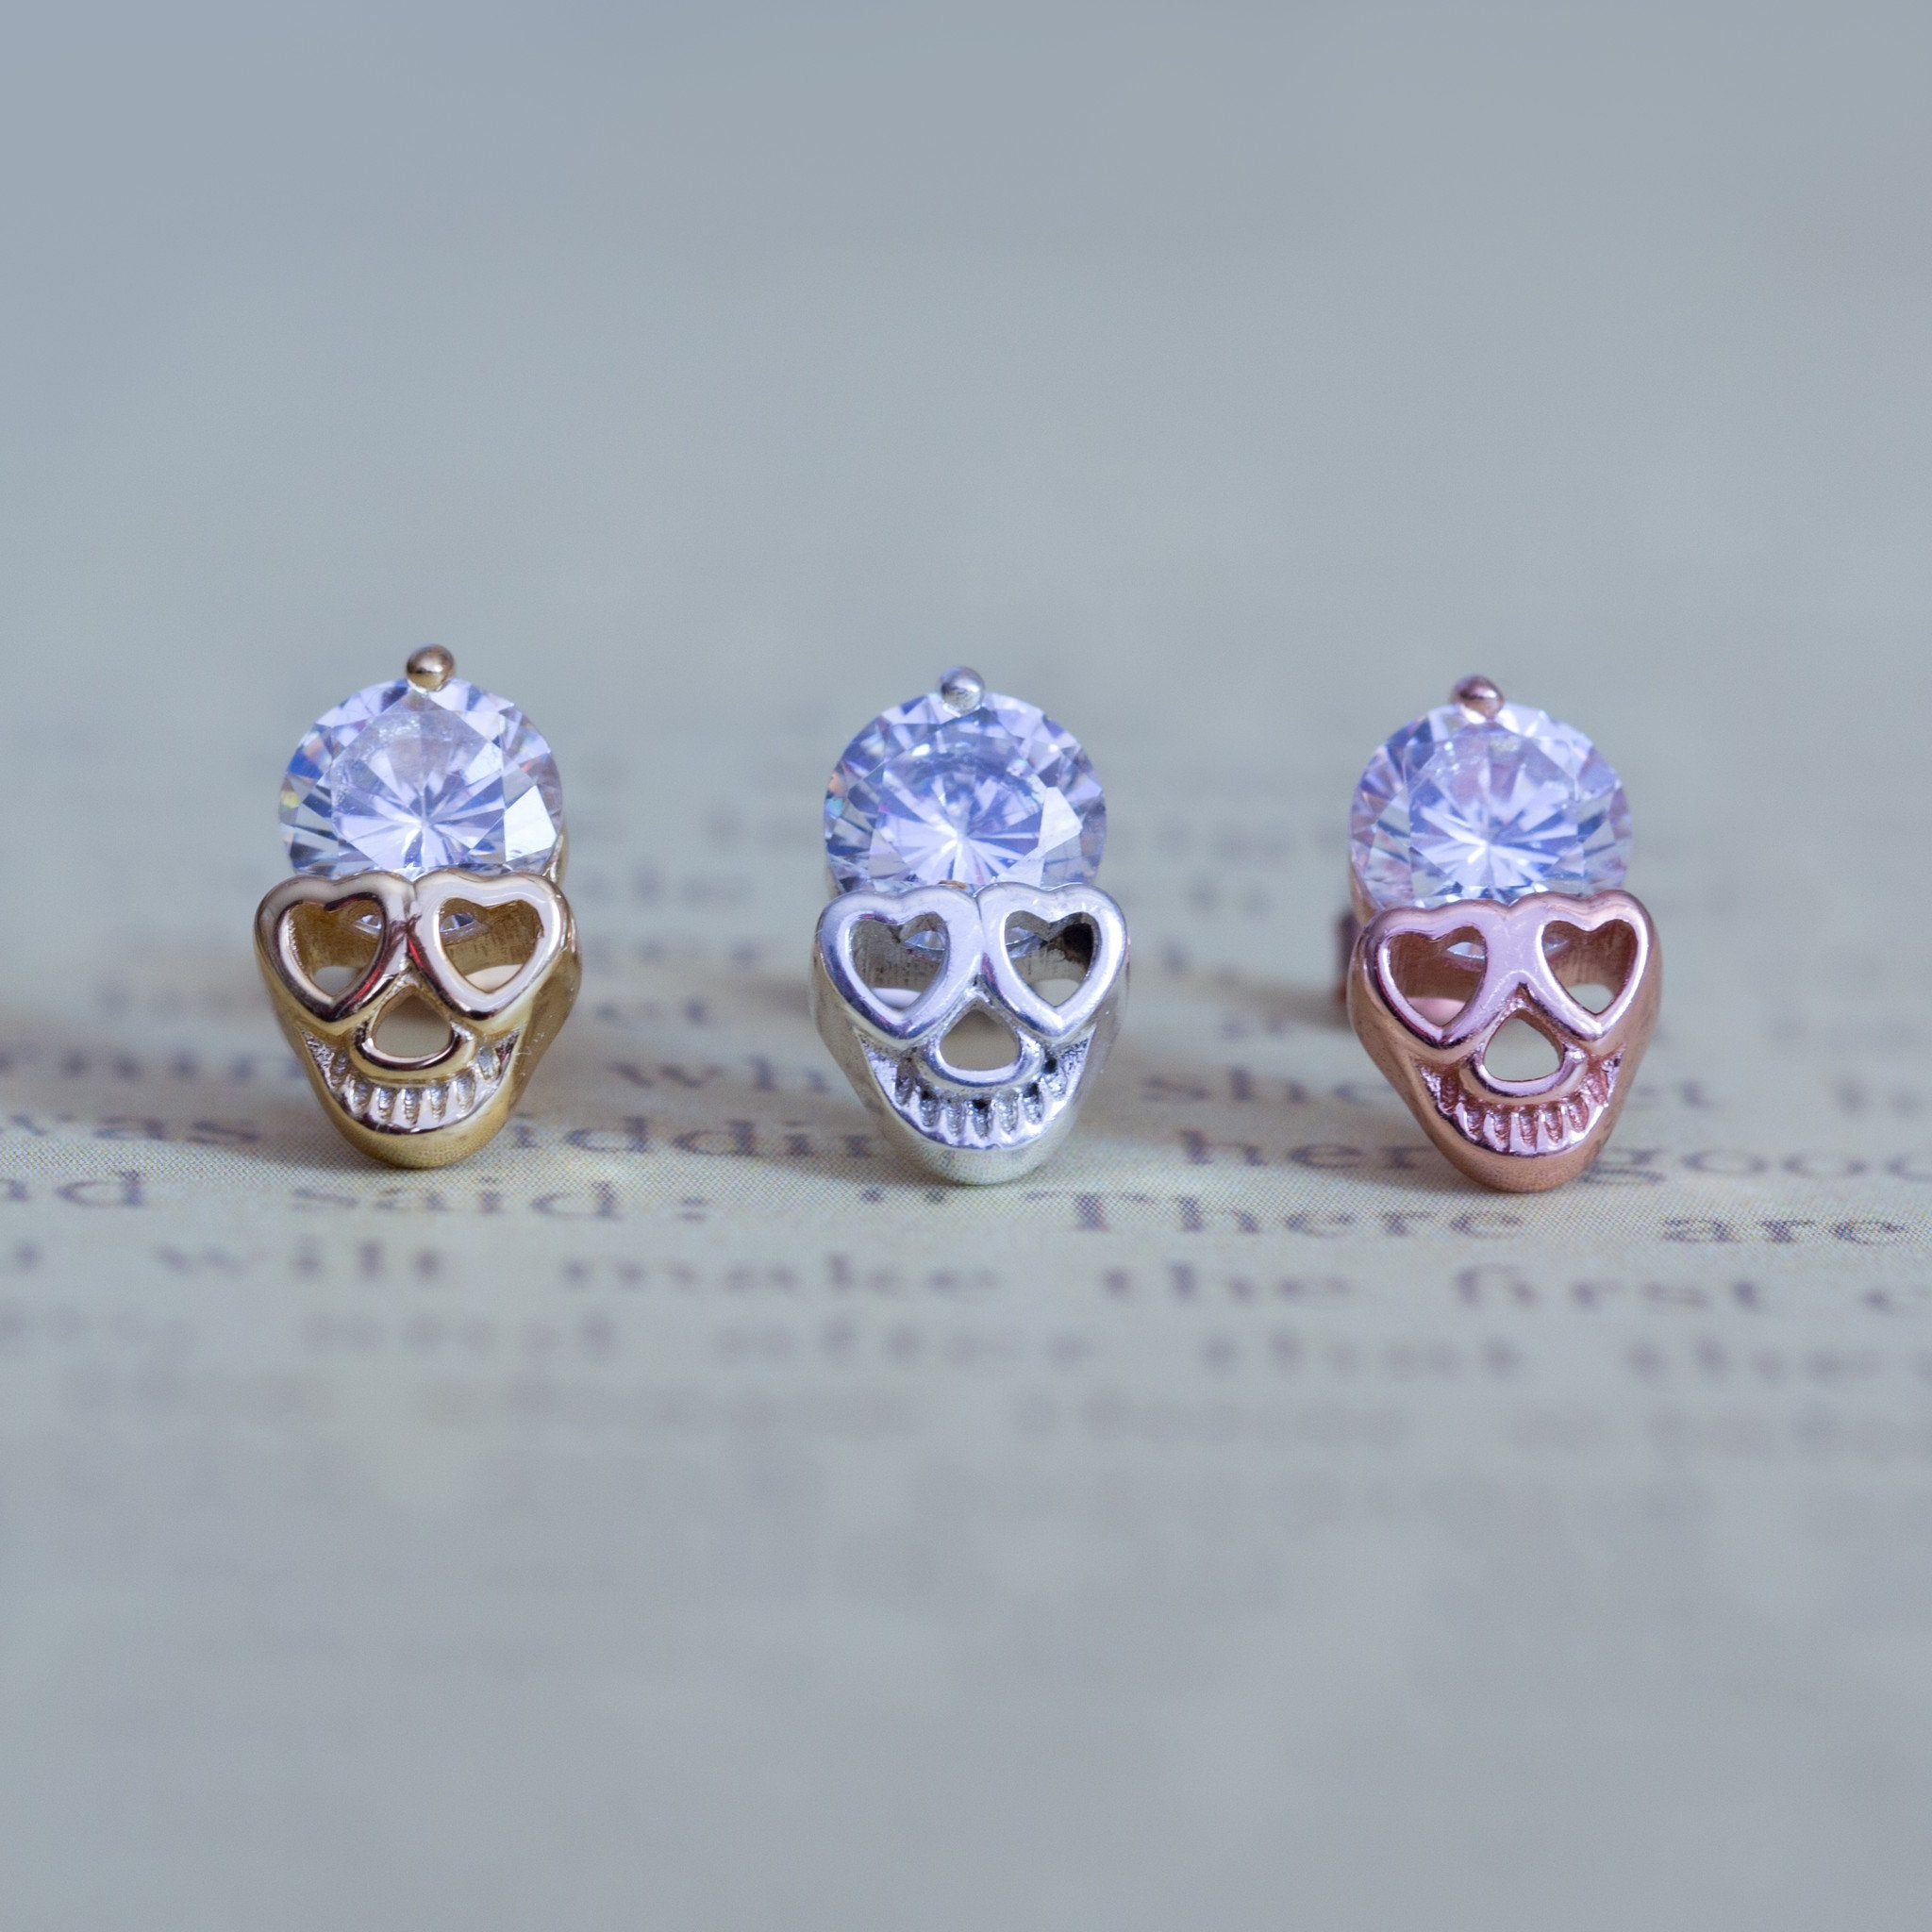 jewellery stud earring image earrings westwood diamante skull vivienne